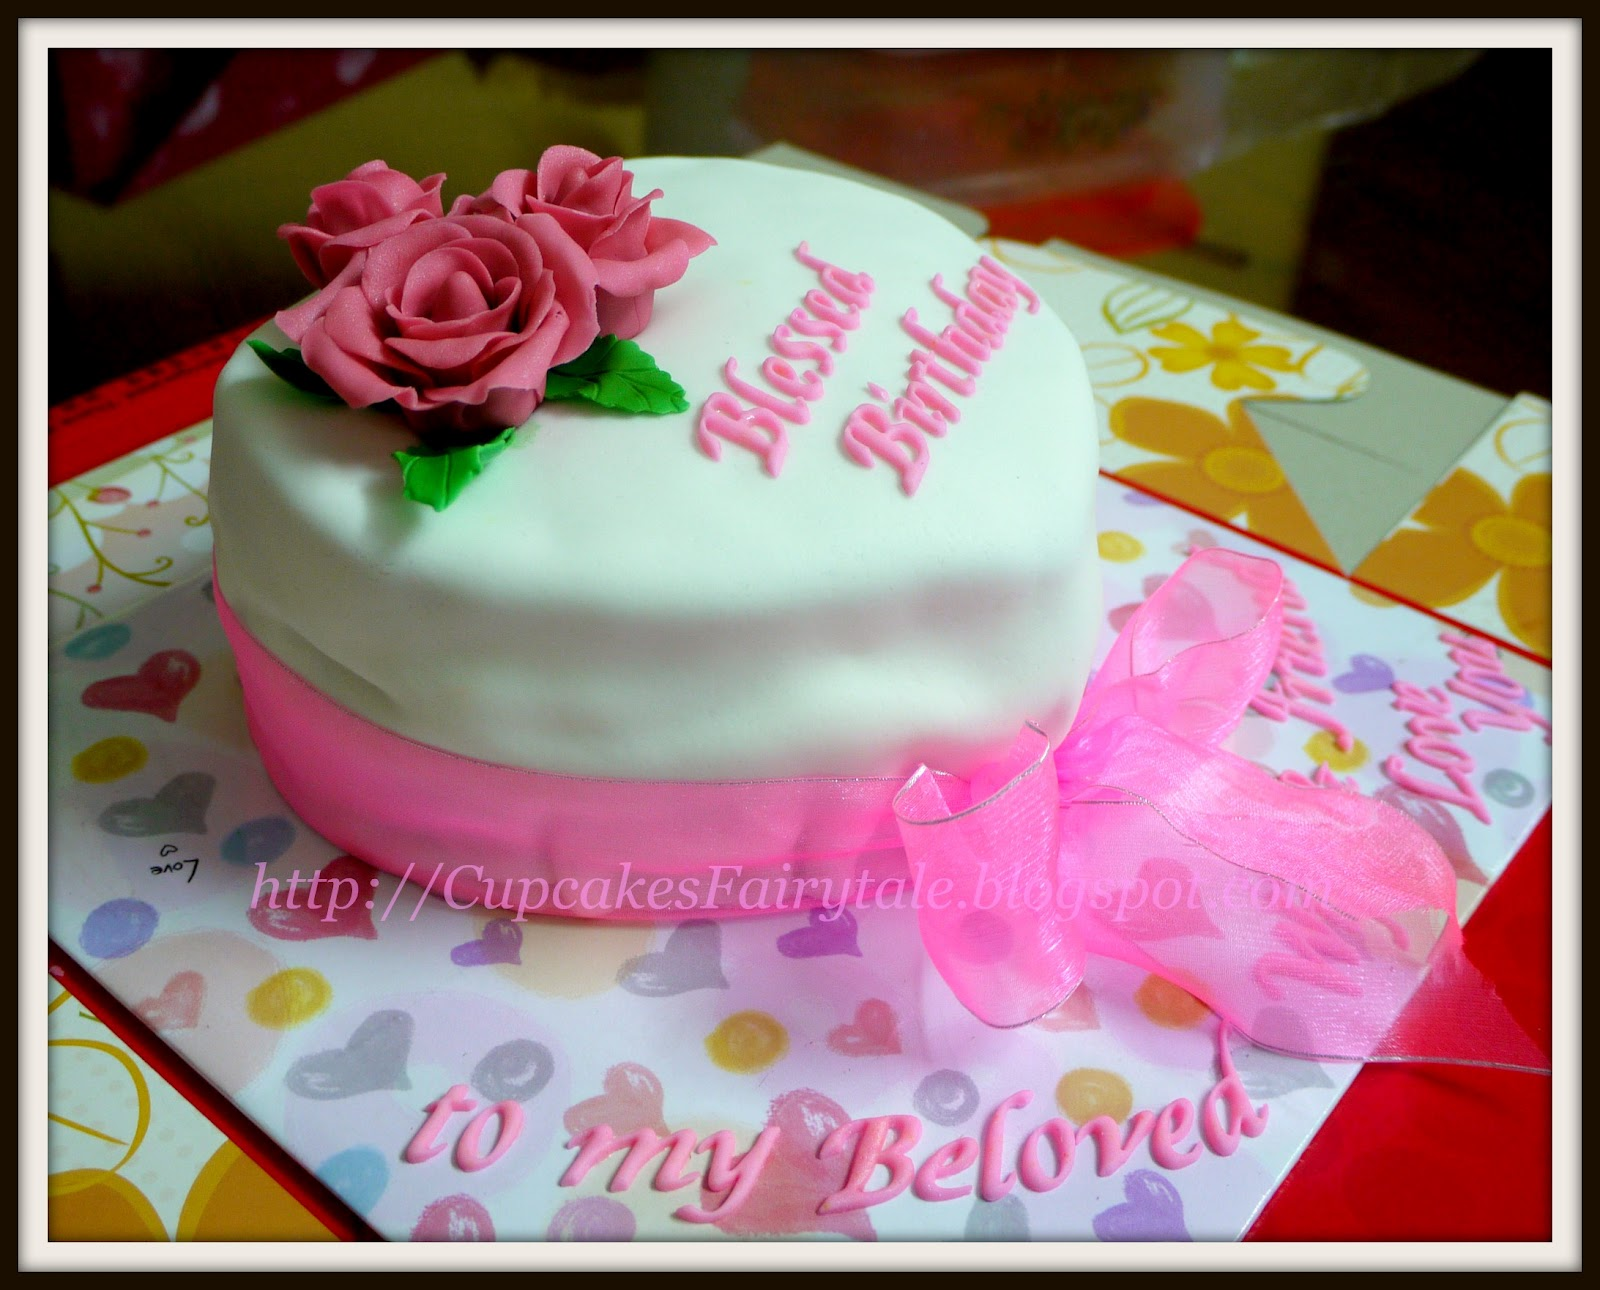 Birthday Cakes Ideas For My Husband ~ Birthday cakes for husbands image inspiration of cake and